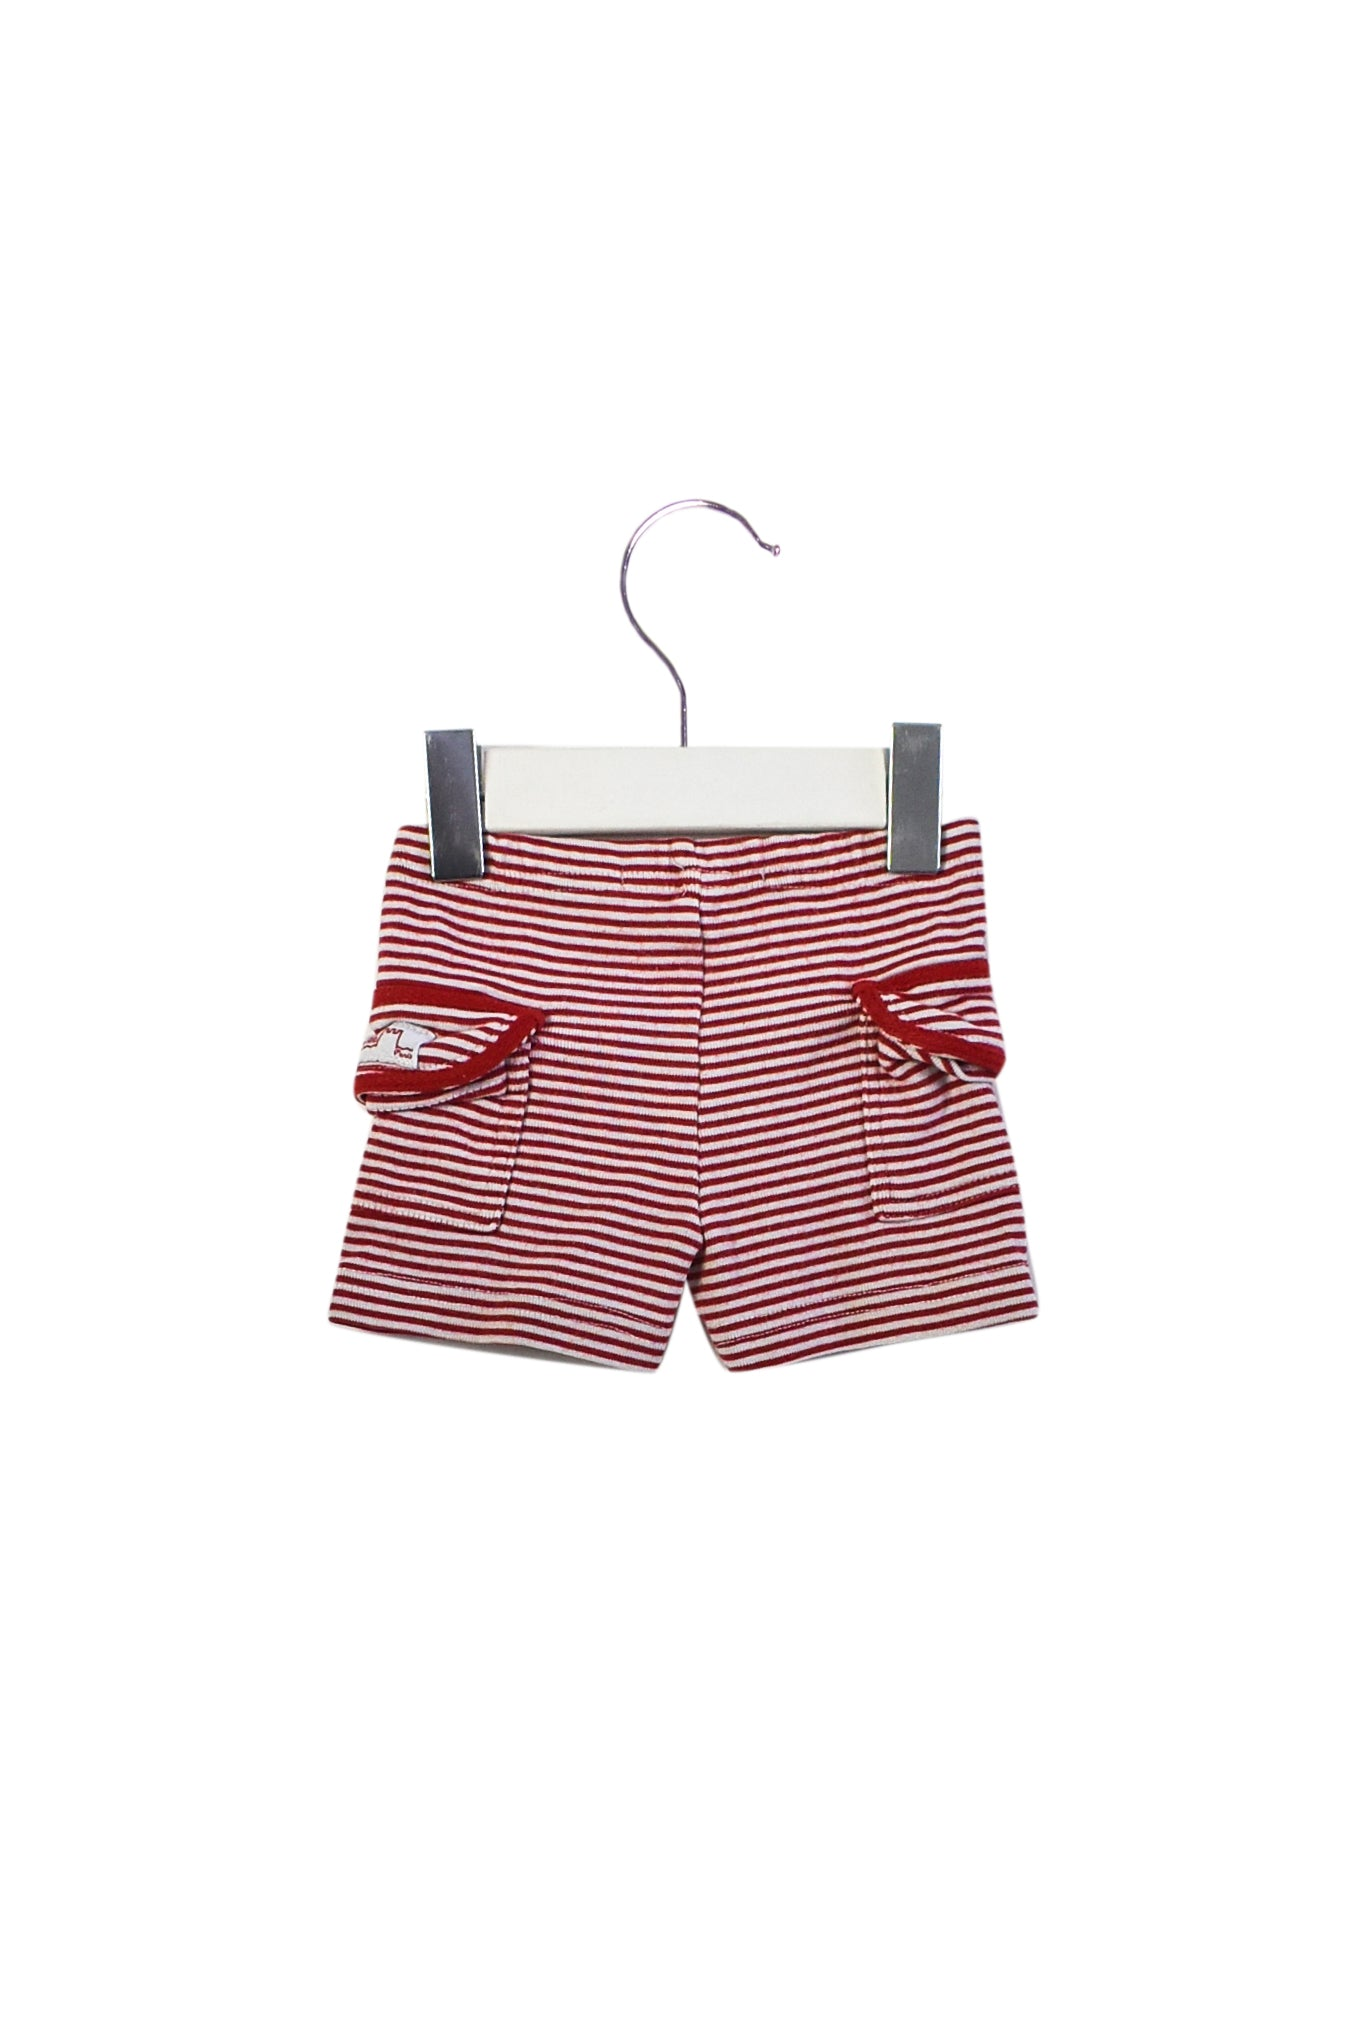 10013319 Chateau de Sable Baby ~ Shorts 3M at Retykle